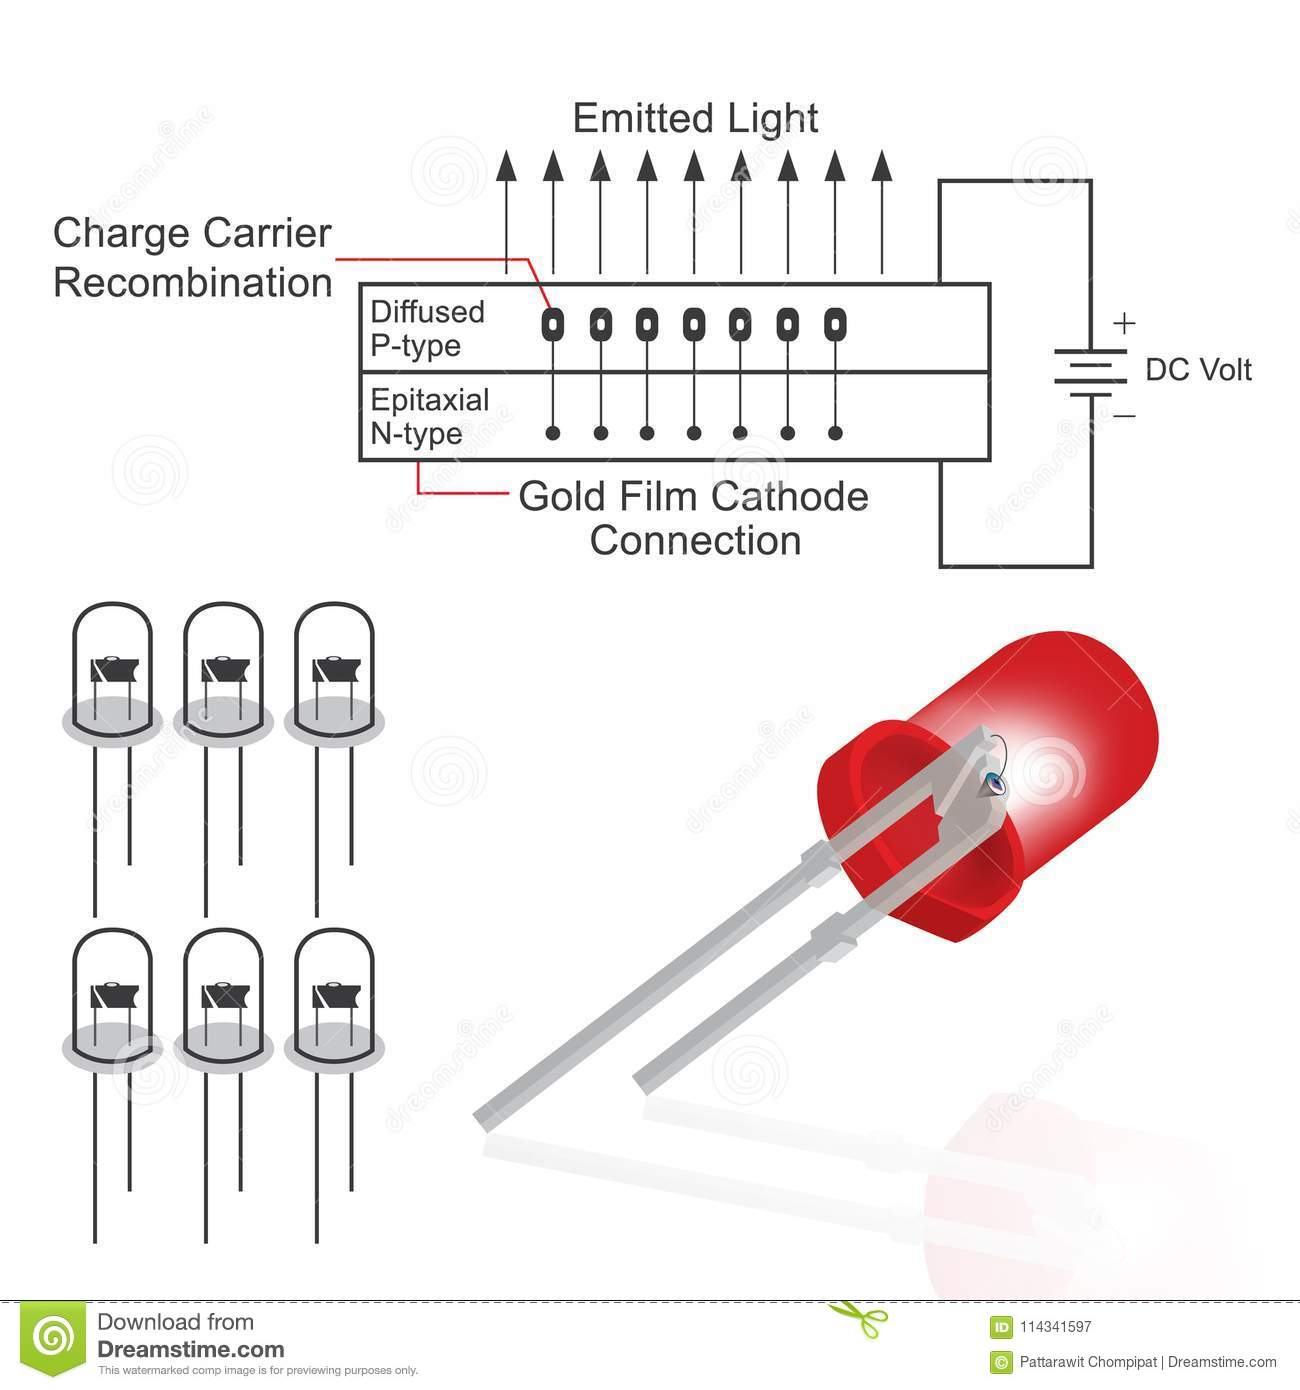 Light Emitting Diode Circuit Diagram Affordable Pictures Led Relaycontrol Controlcircuit Seekic Best Structure With